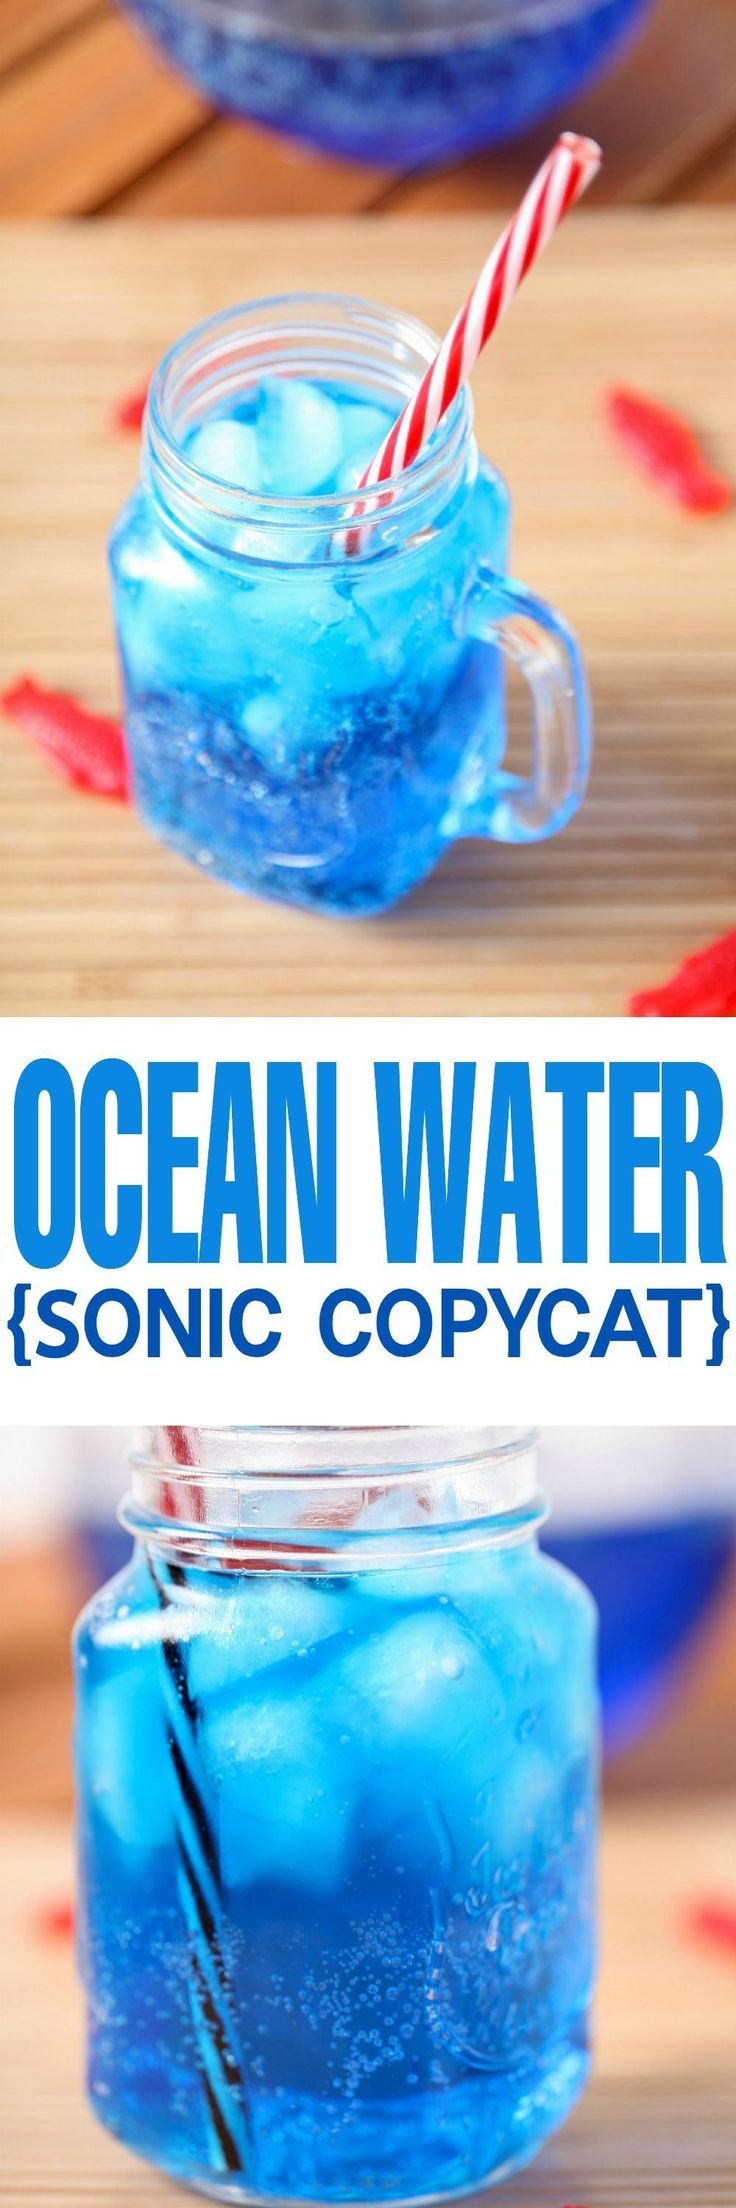 Copycat Sonic Ocean Water Recipe: The most gorgeous and refreshing summer drink around. The perfect non alcoholic drink for picnics or the Fourth of July. AMAZING PALEO COOKBOOK IS WAITING FOR YOU...